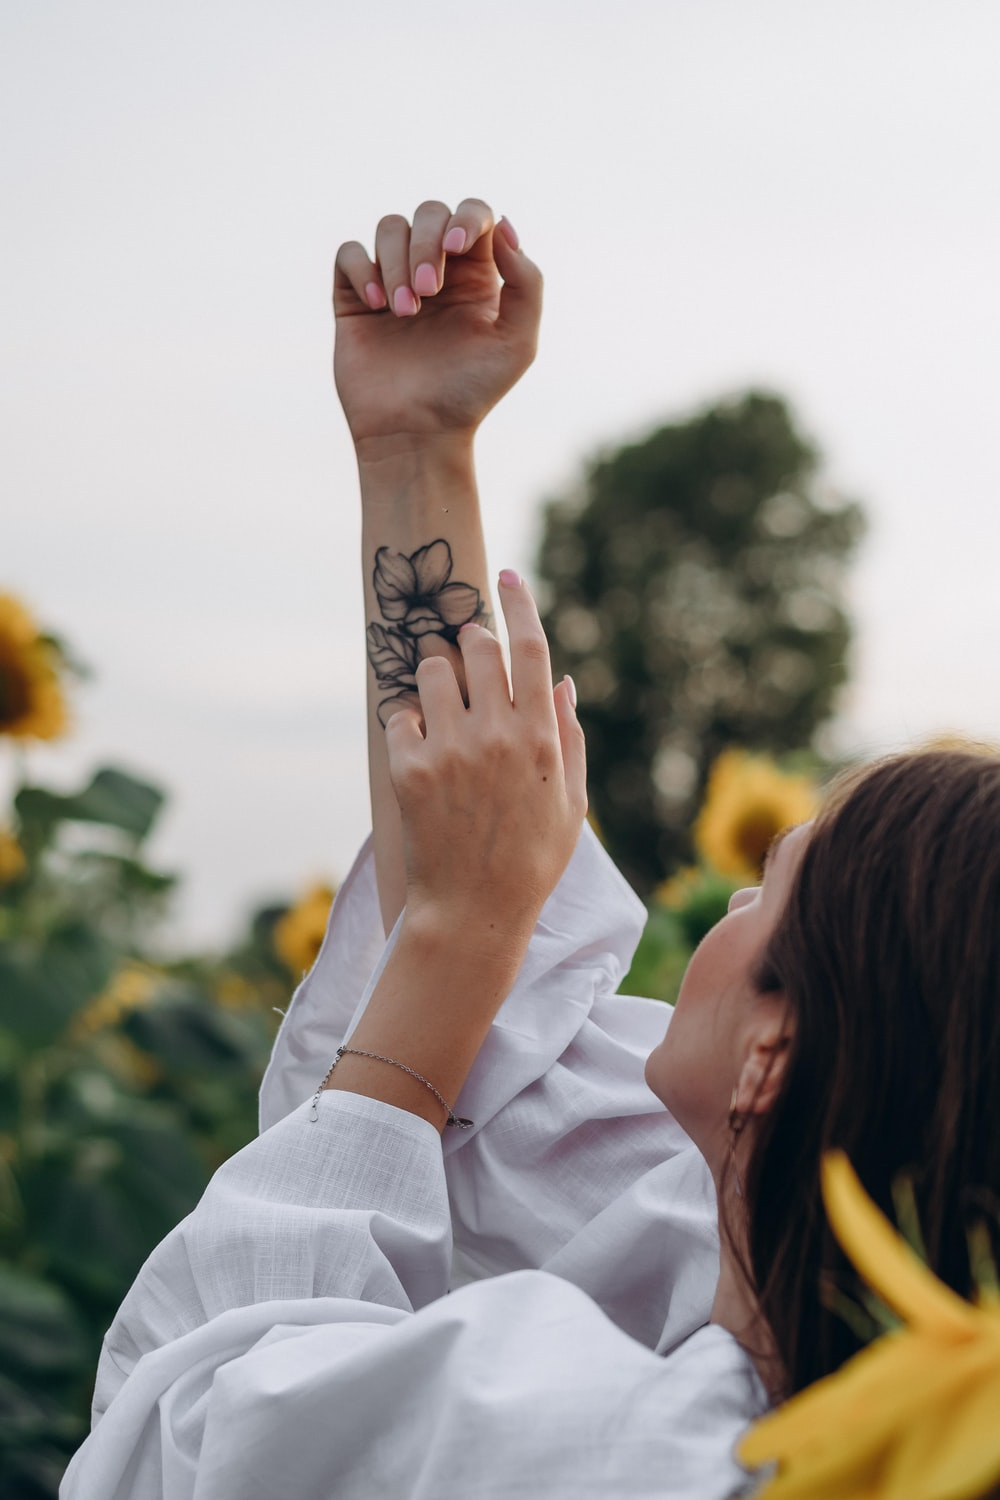 woman with black and white floral tattoo on left hand